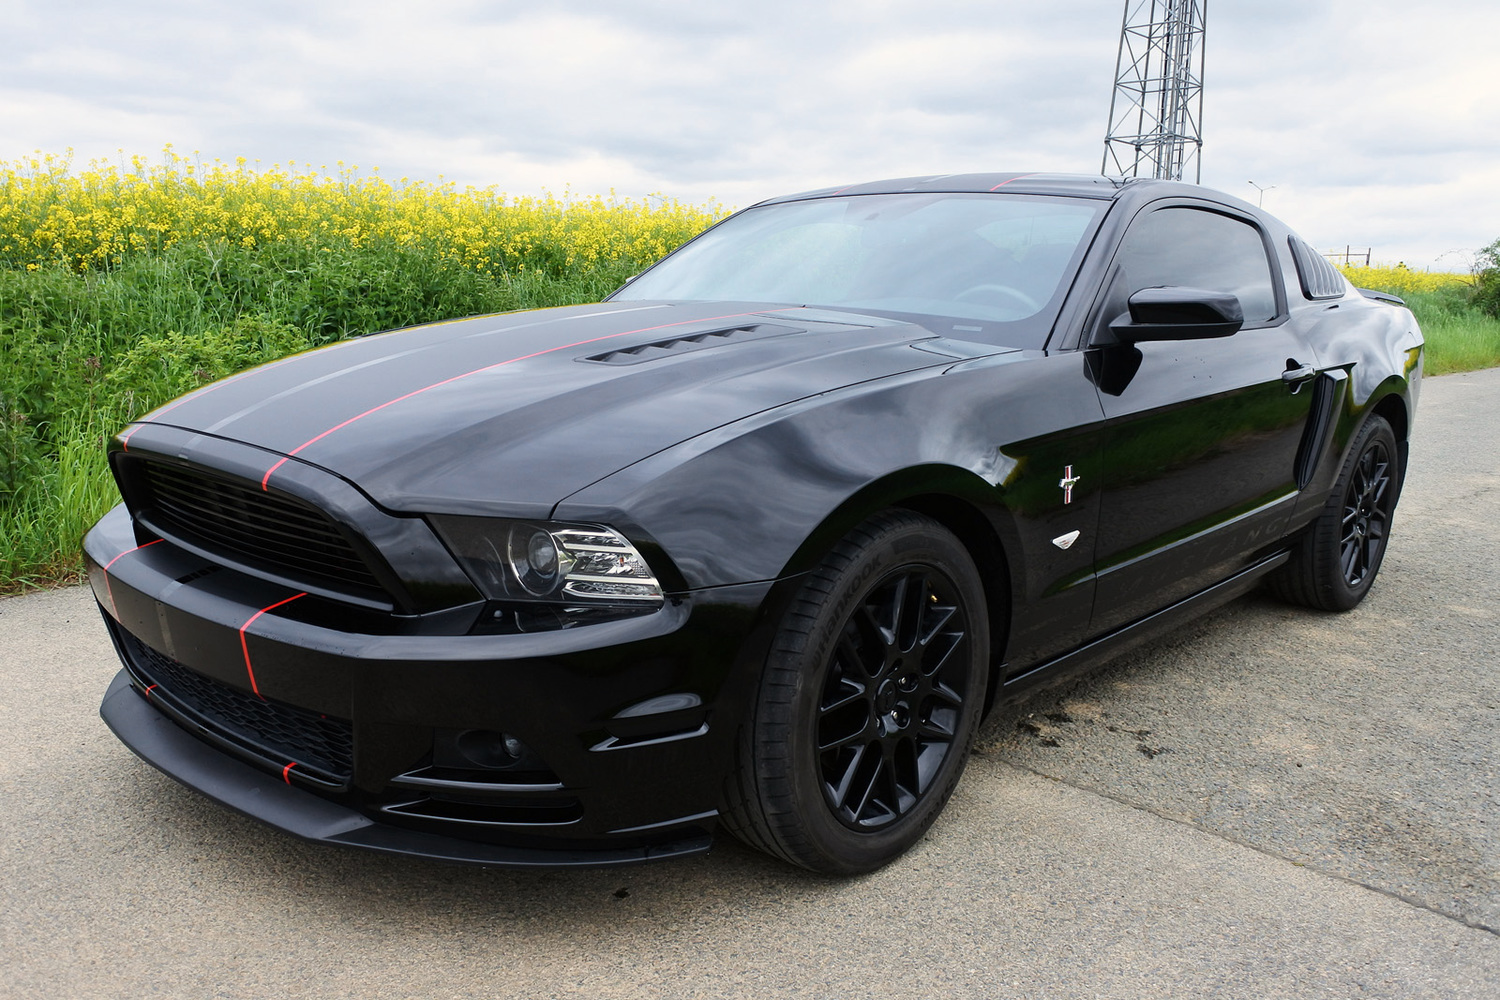 ford mustang v6 3 7 custom 2014 2014 na prodej inzer t bazar zaj mav ch aut autofrc. Black Bedroom Furniture Sets. Home Design Ideas